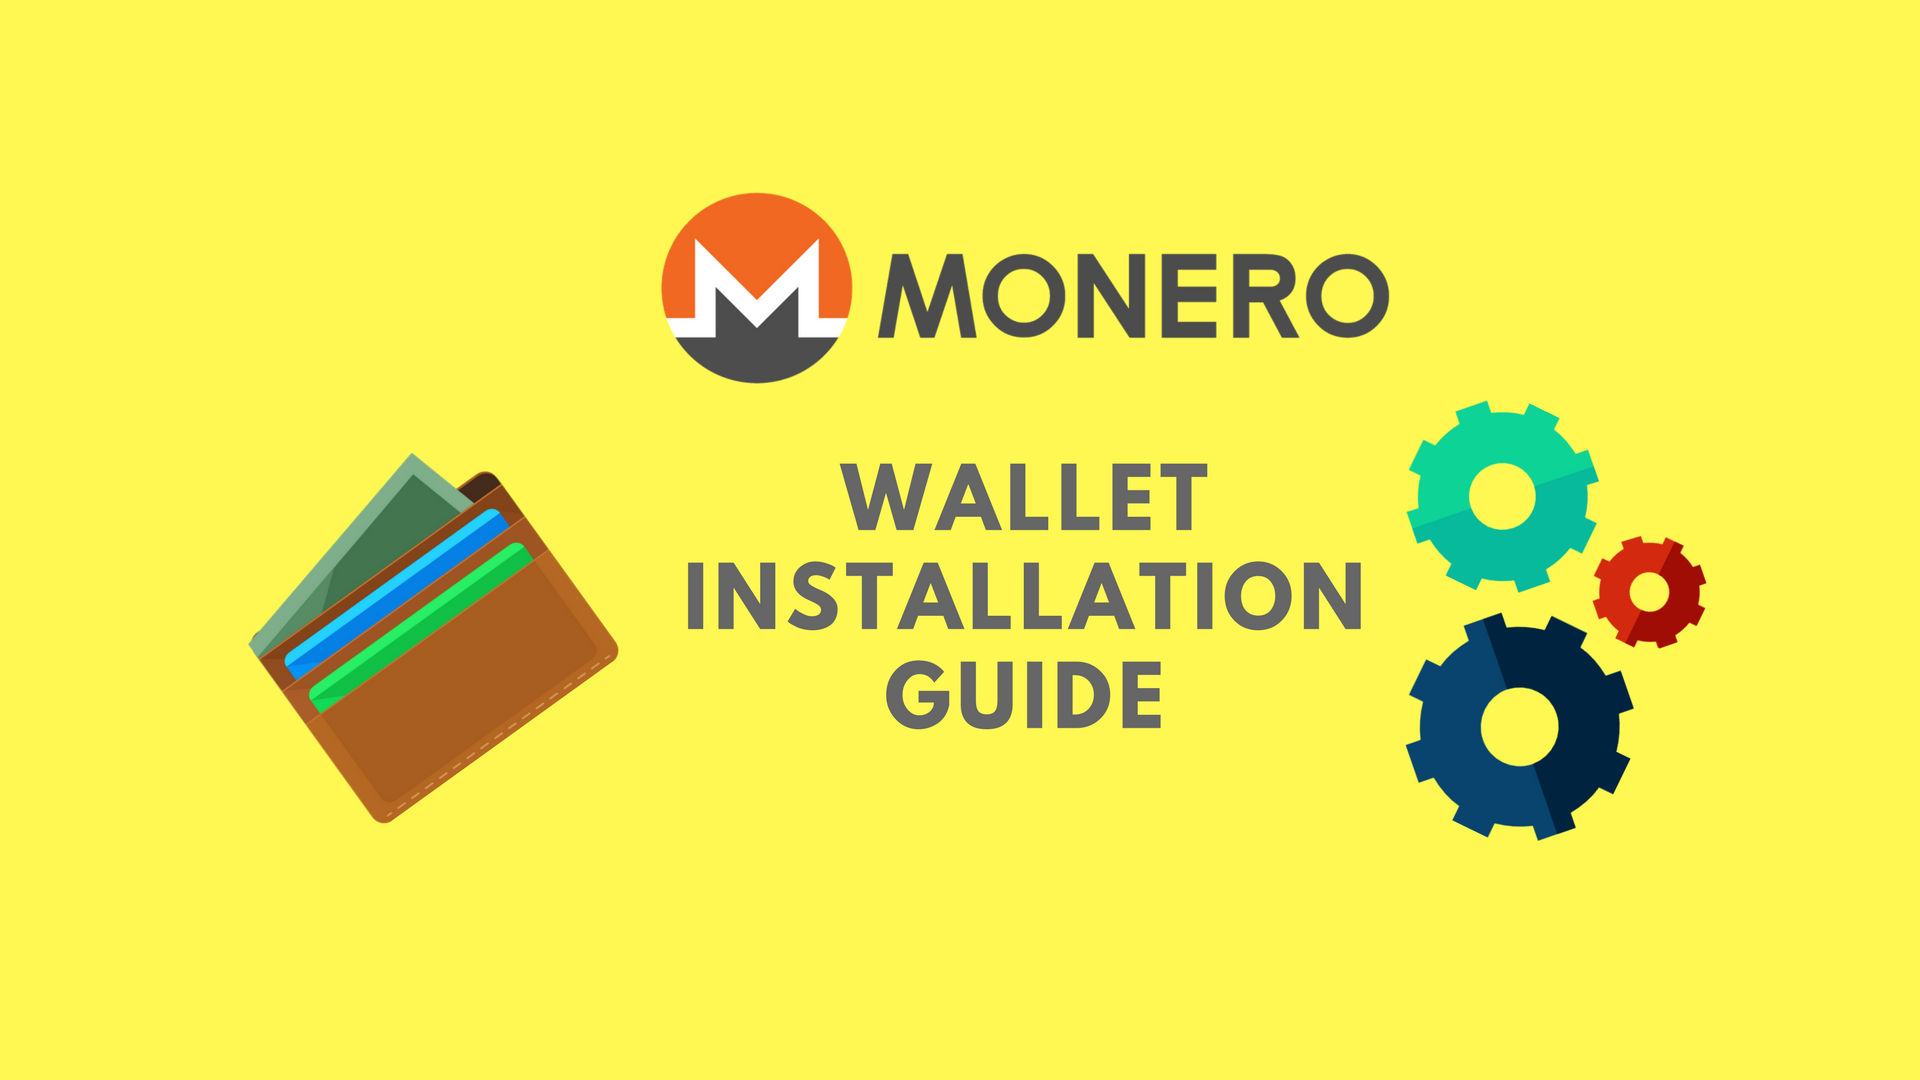 Setting Up a Monero Wallet - A Simple Guide